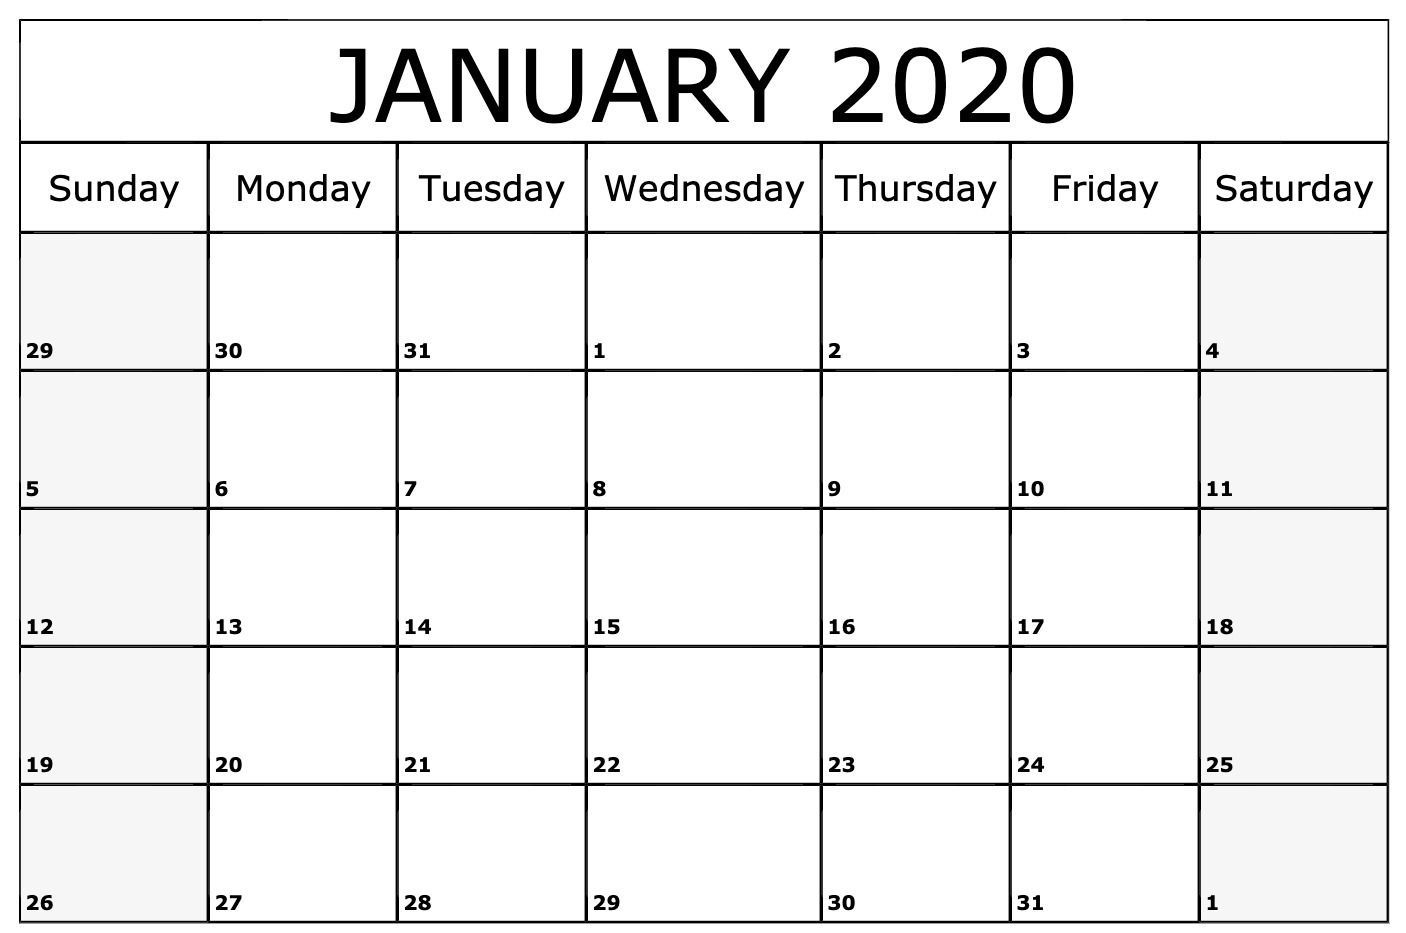 January 2020 Calendar Printable Template | Monthly Calendar